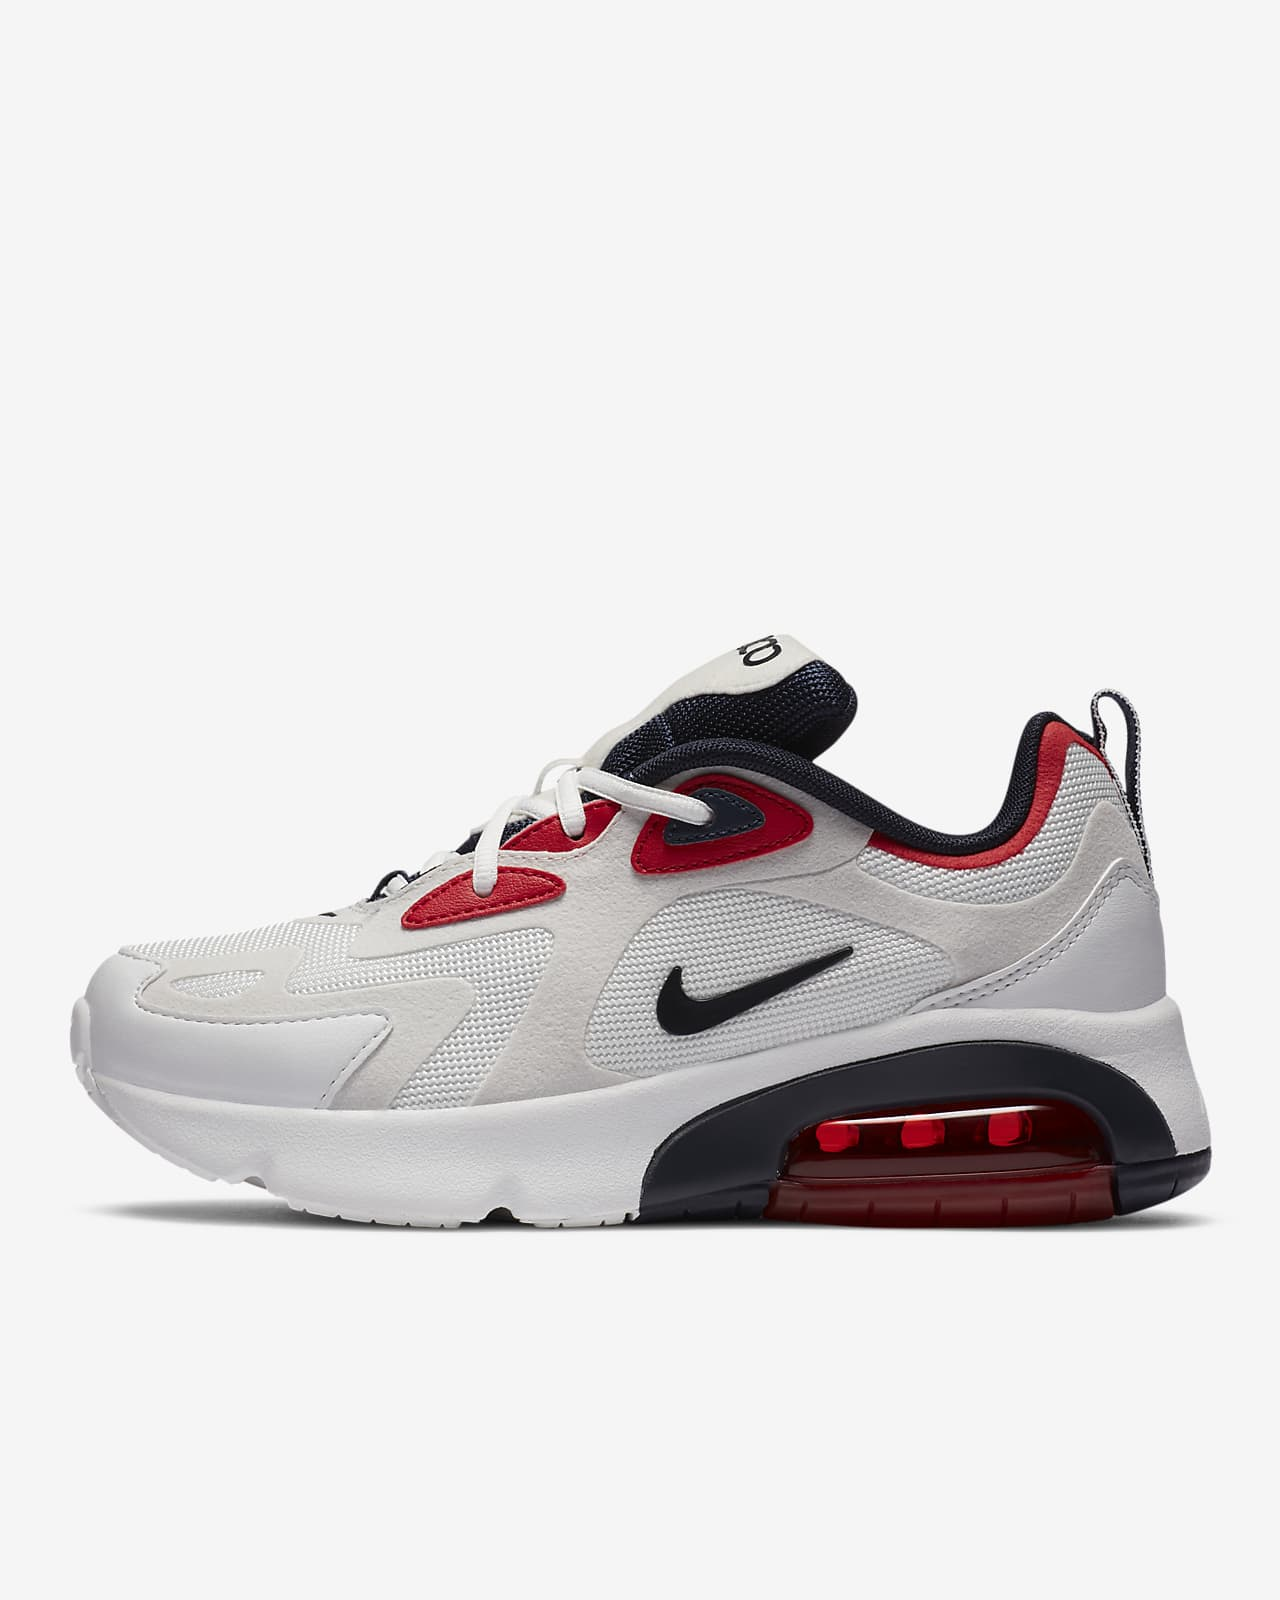 Edad adulta Detener Vadear  Nike Air Max 200 Big Kids' Shoe. Nike.com